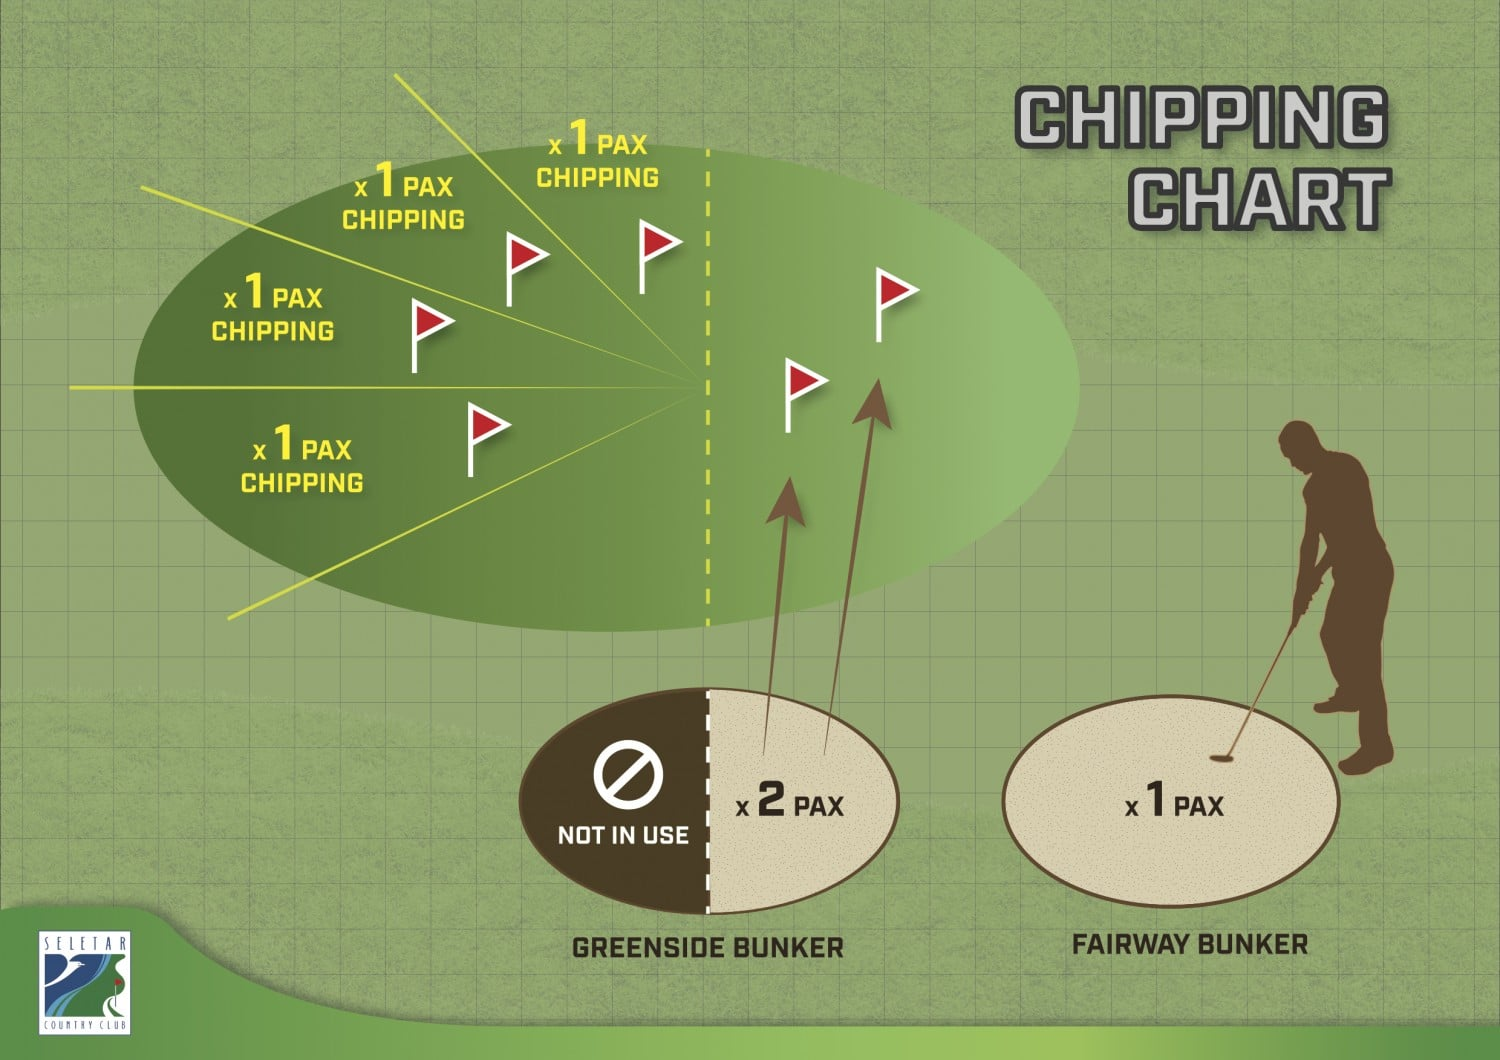 chipping chart